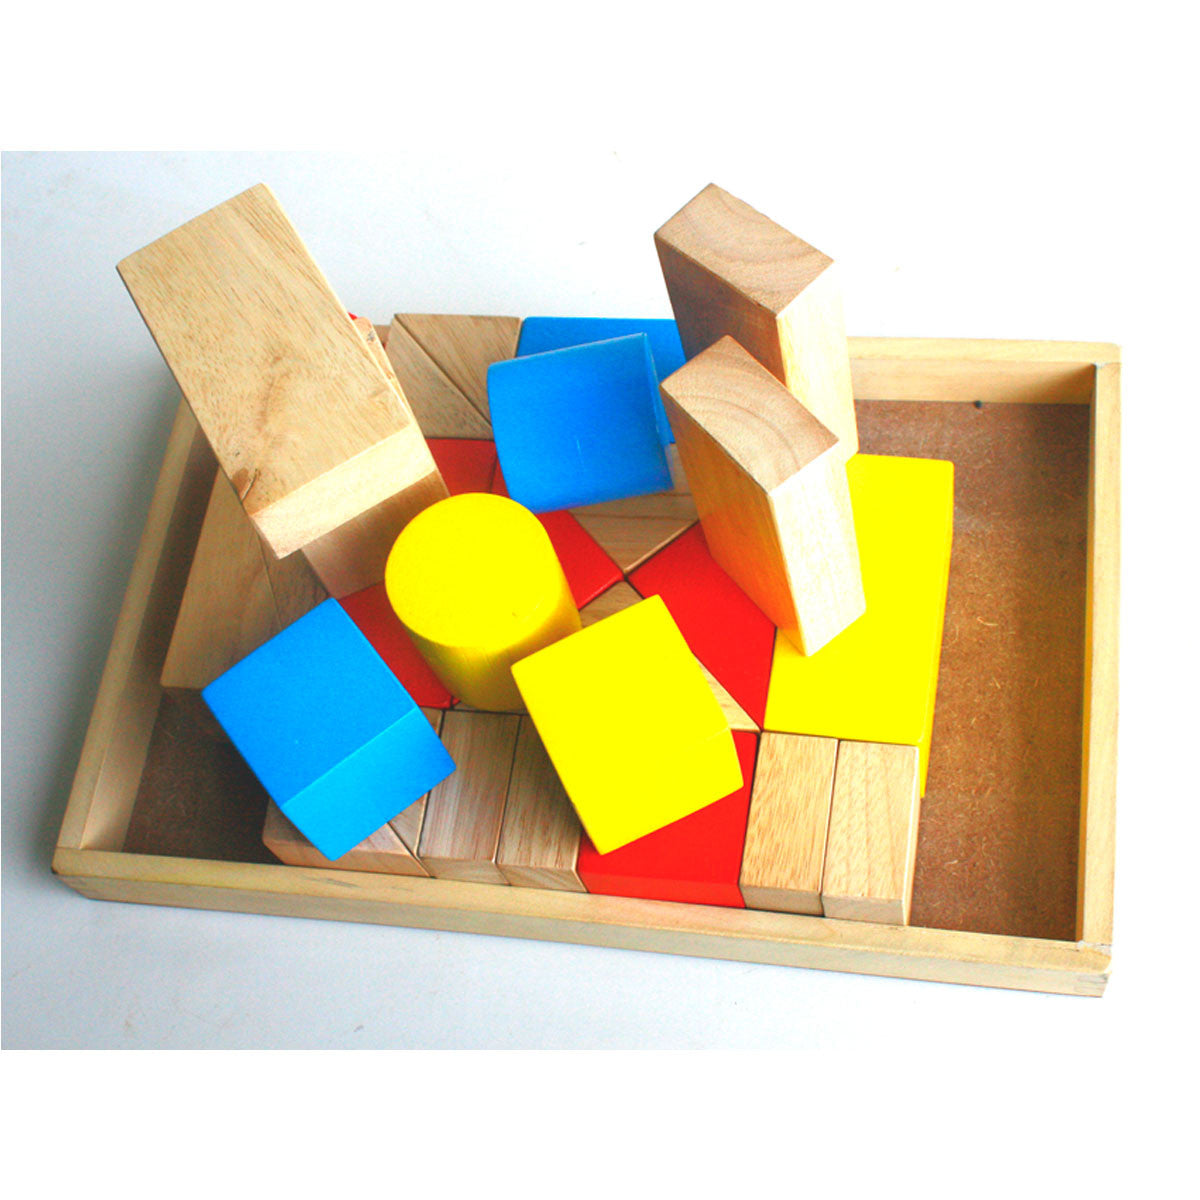 QToys Wooden Sound Blocks   - QToys - Little Earth Nest - 2